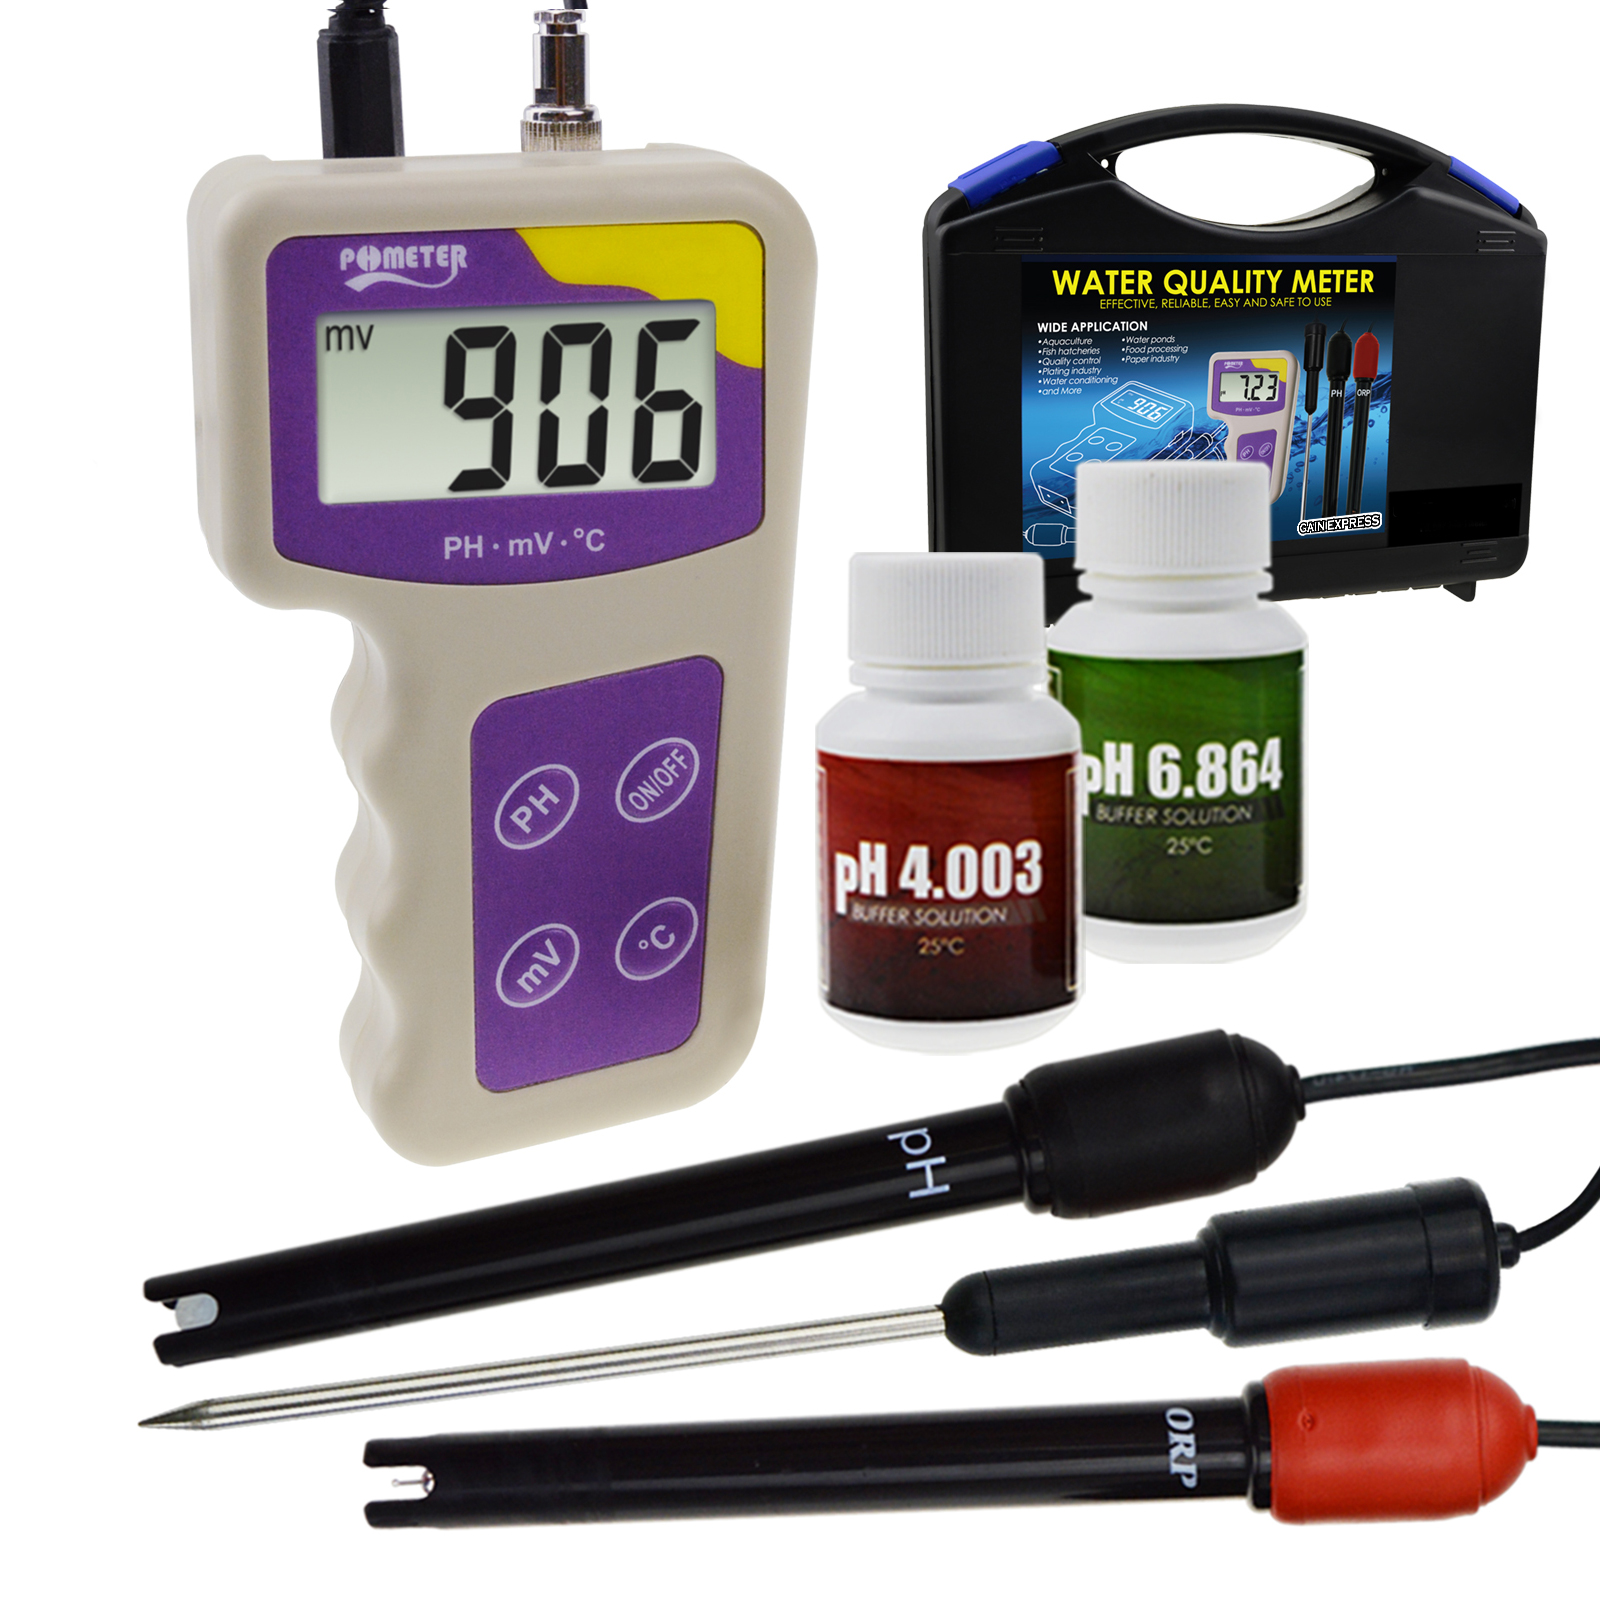 3 in 1 pH mV ORP Temperature Redox Meter Water Quality Tester Thermometer Analysis Analyzer Removable